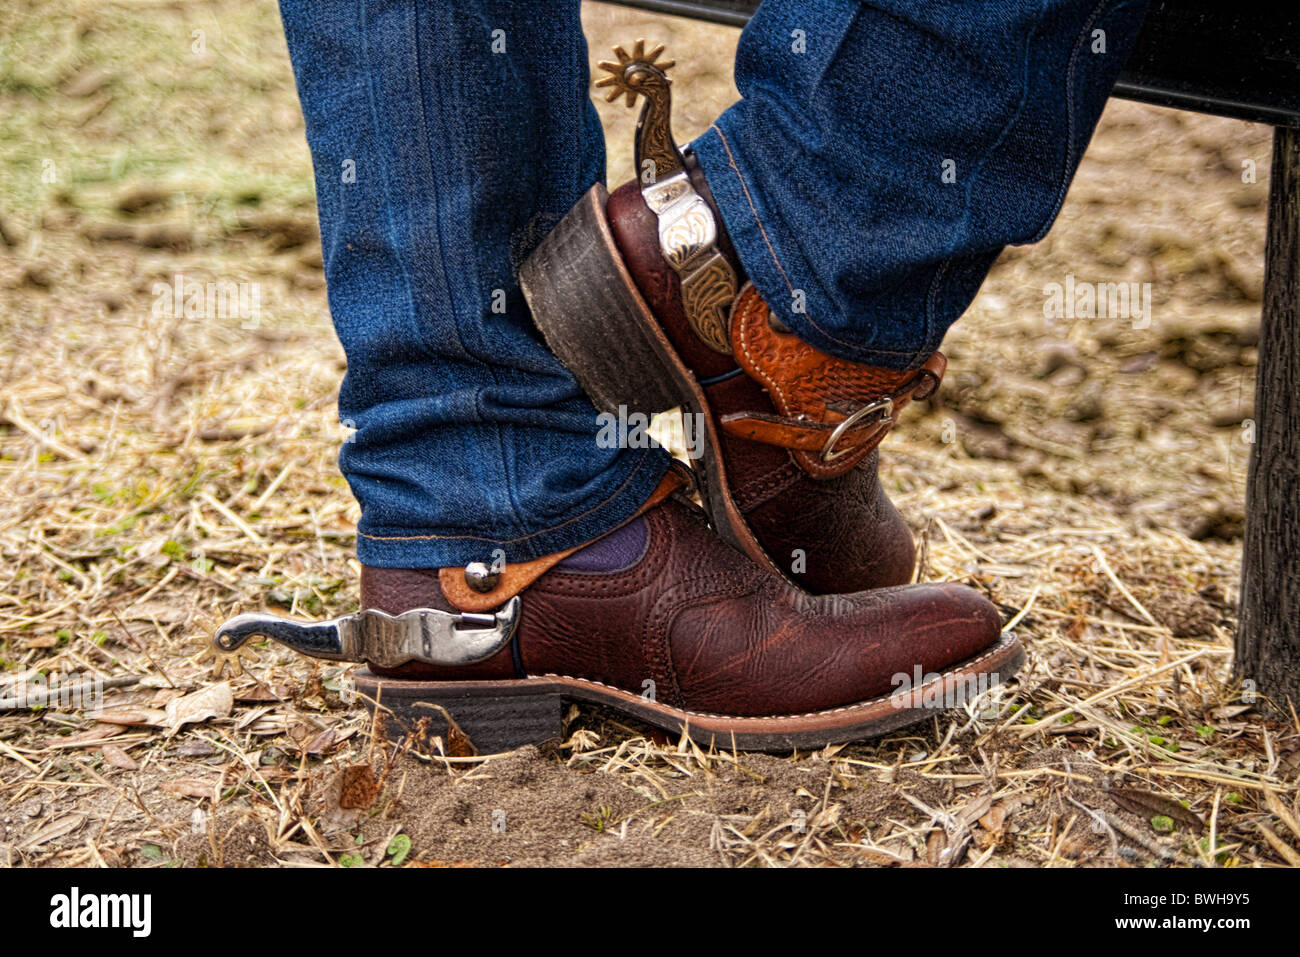 Cowboy boots and spurs - Stock Image